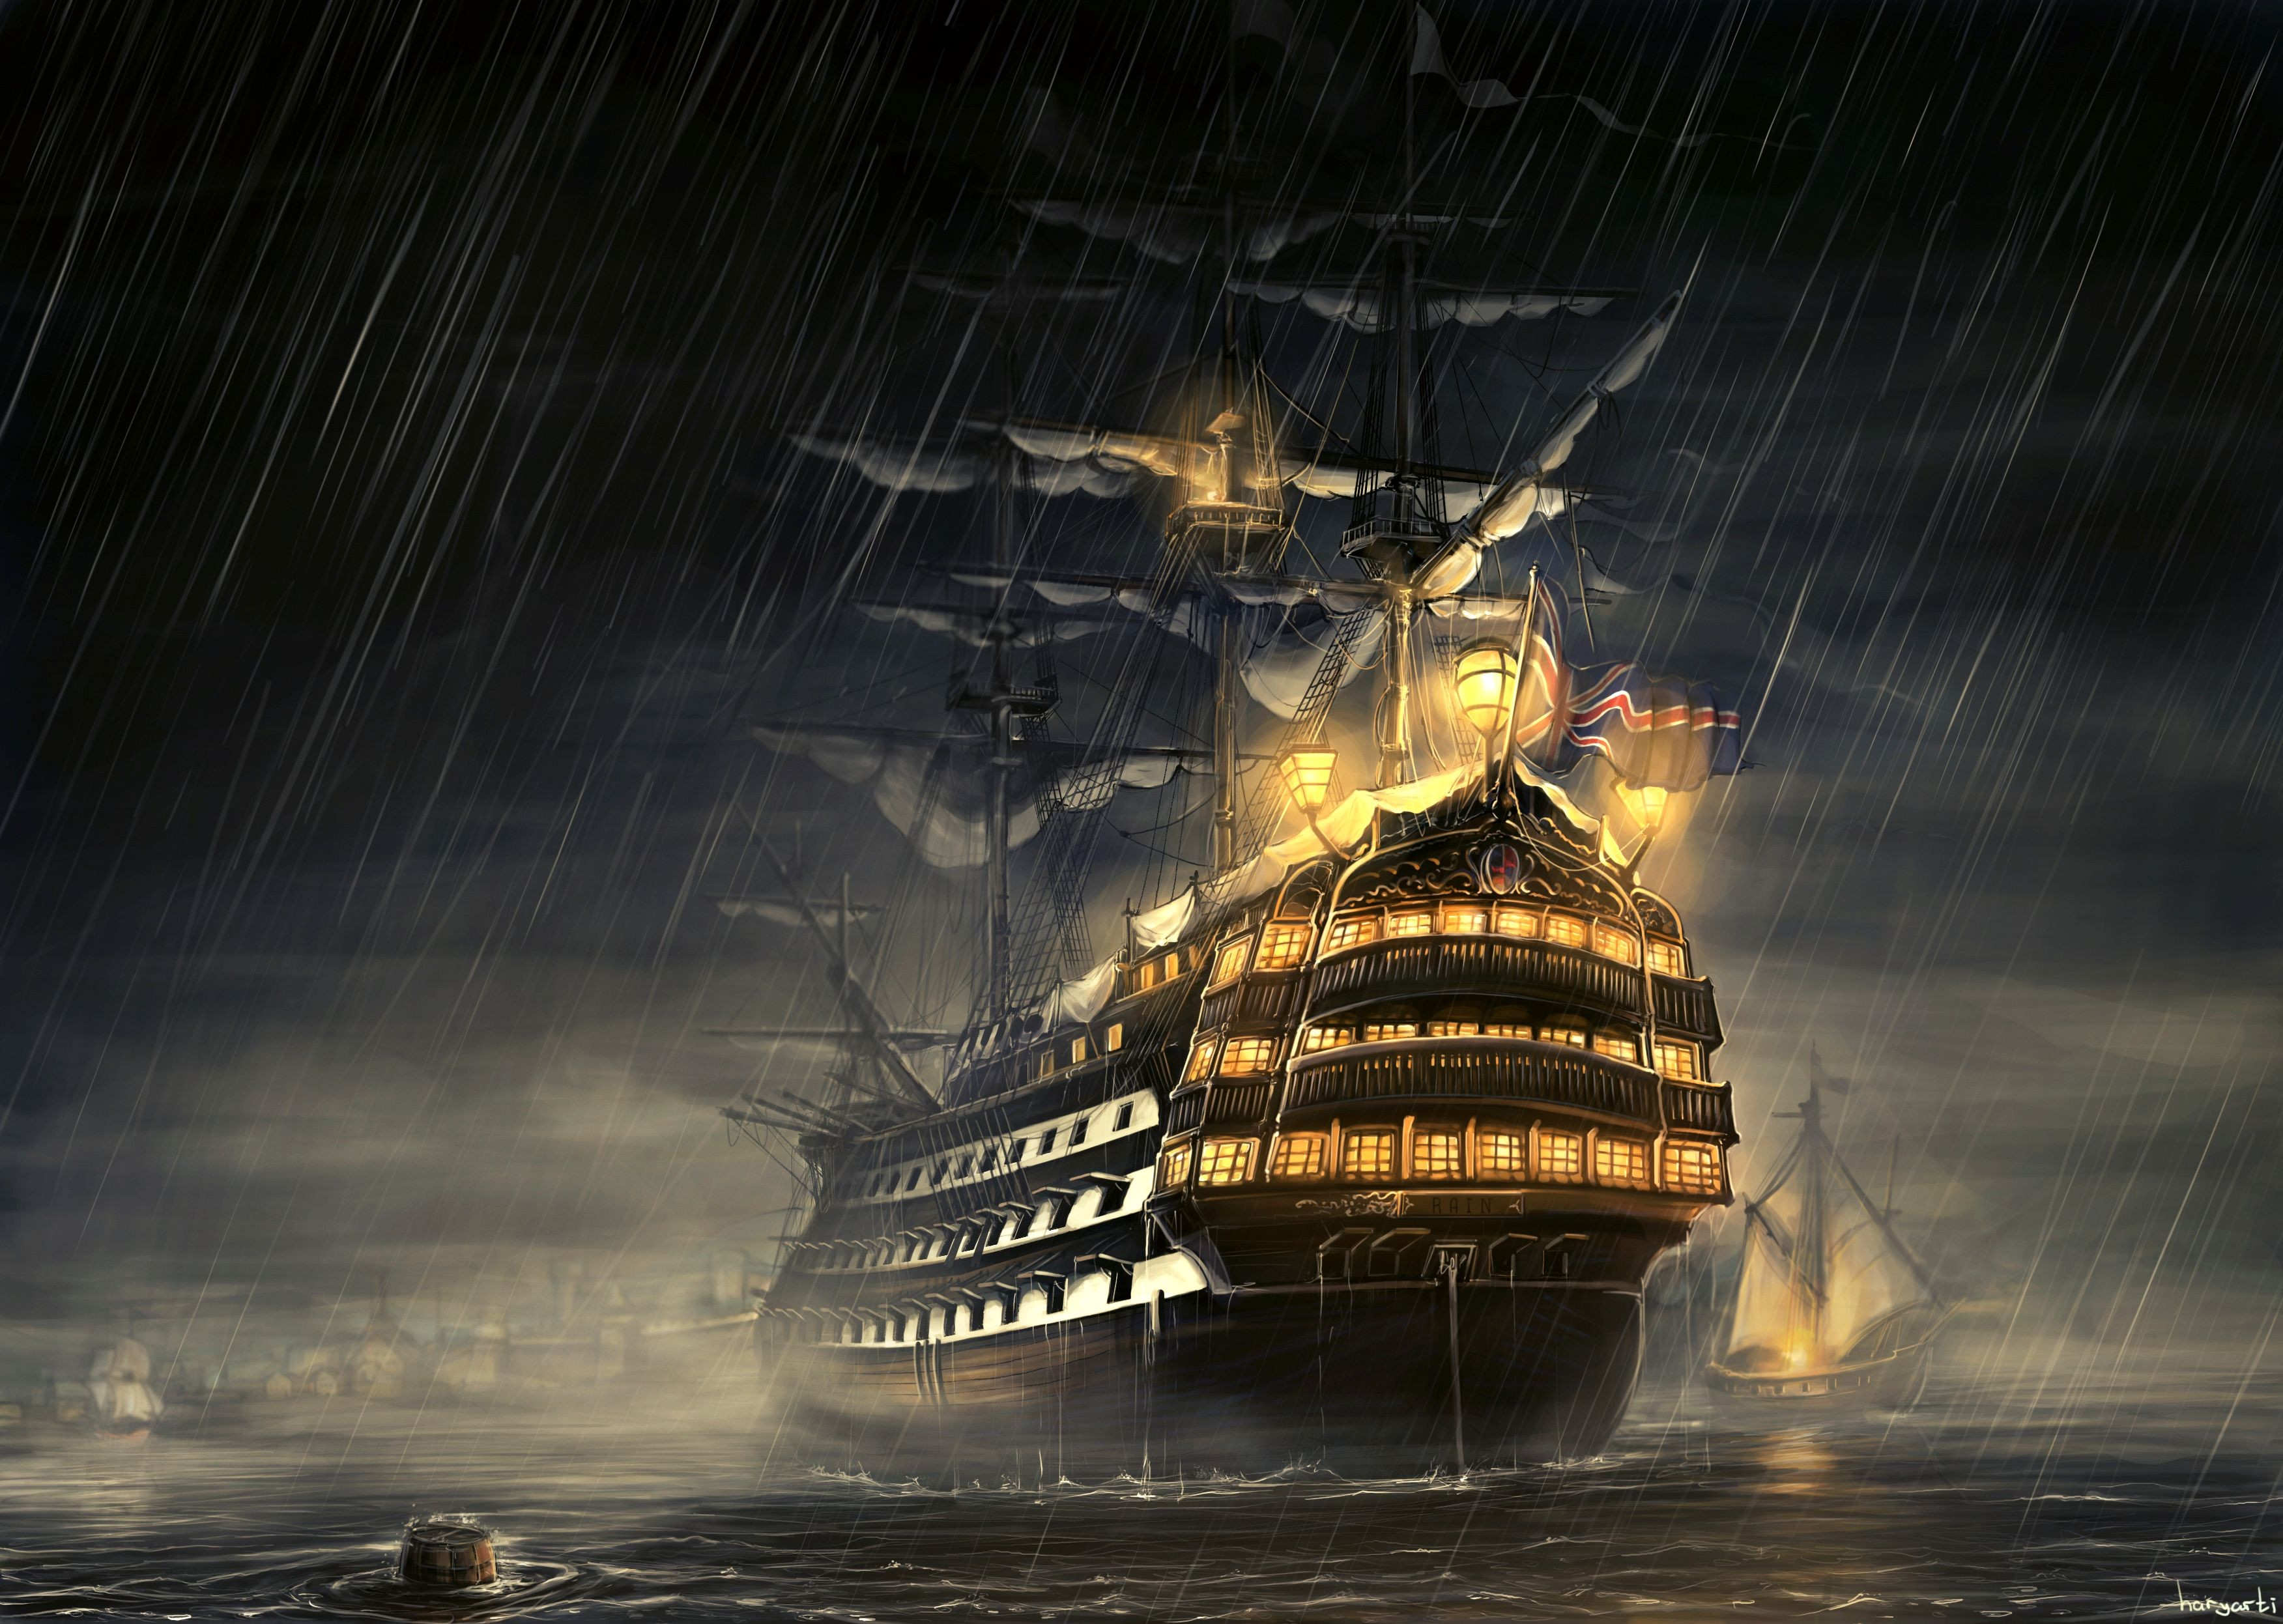 Ship Wallpaper Images in HD Available Here For Download 3504x2493